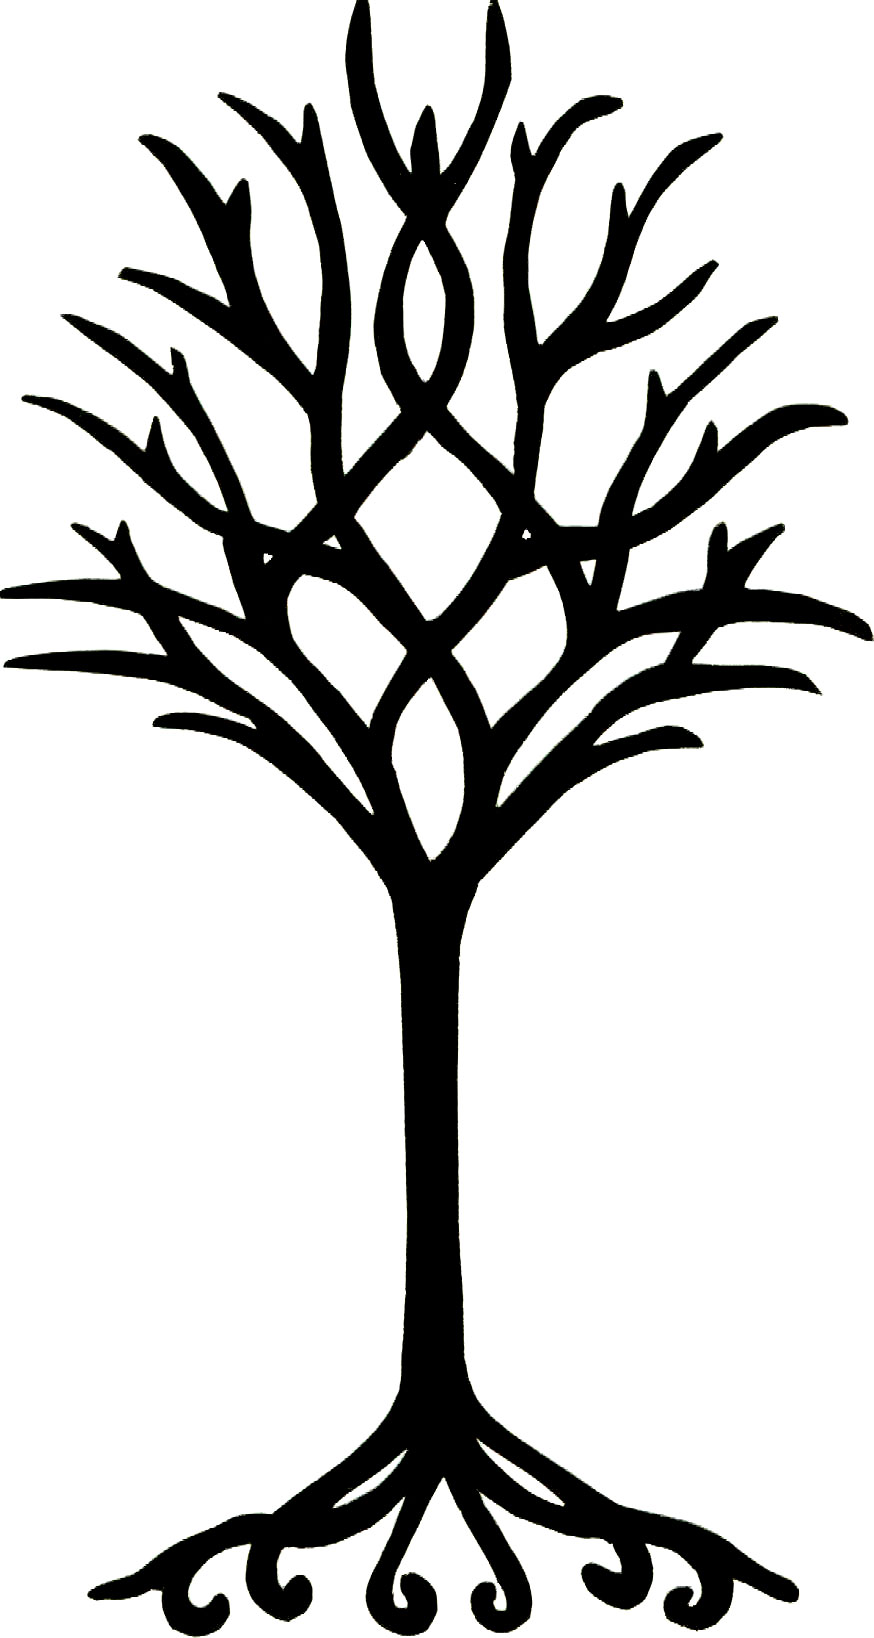 Line Drawing Of Tree : Line drawing of tree clipart best